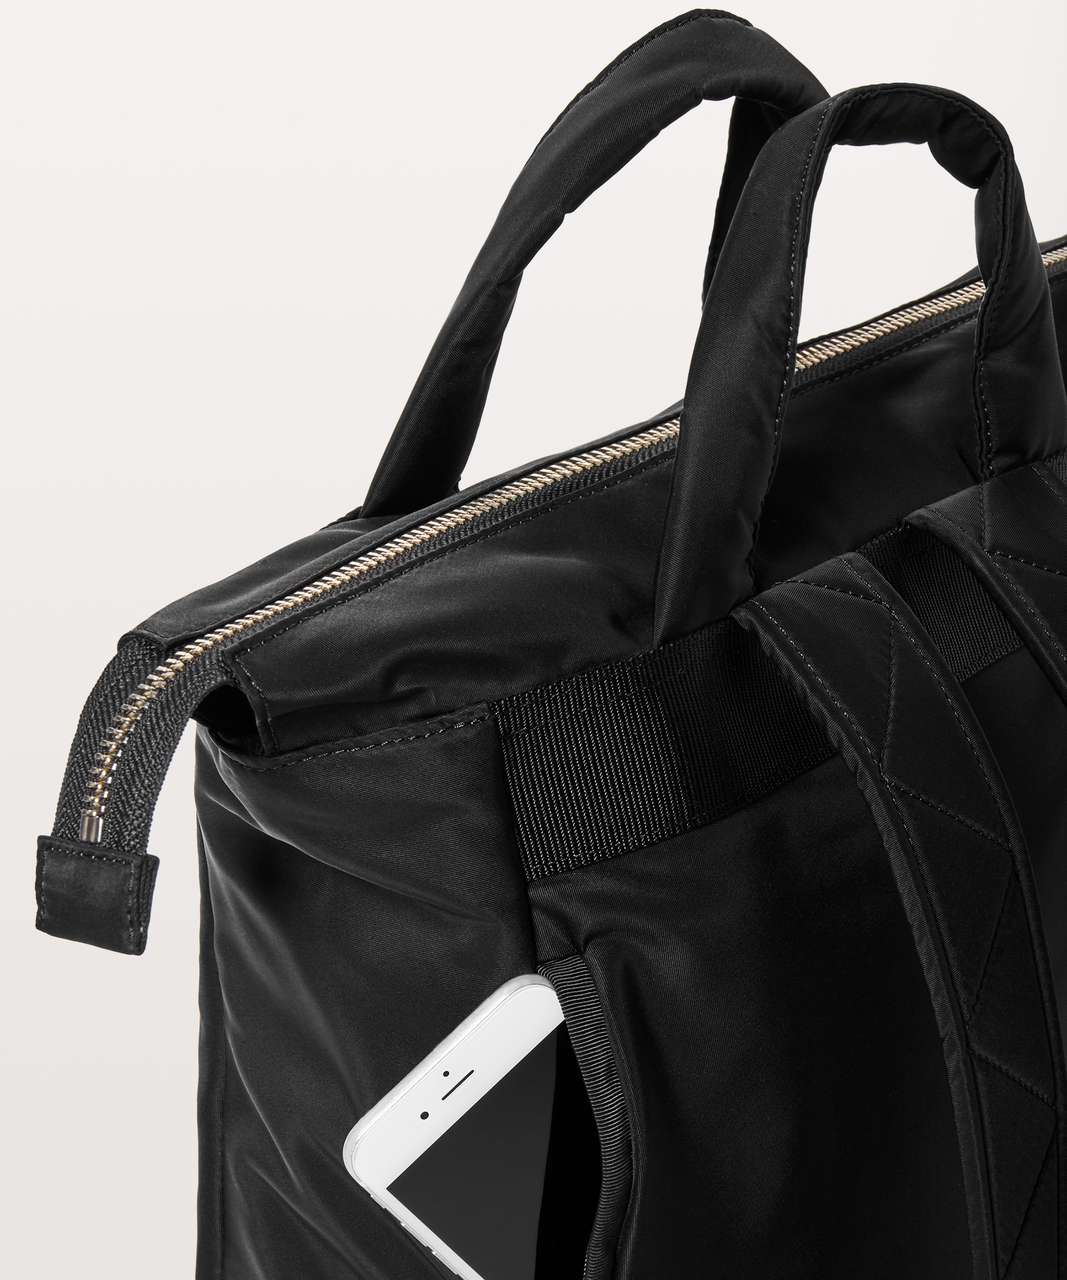 Lululemon City Adventurer Convertible Backpack 15L - Black